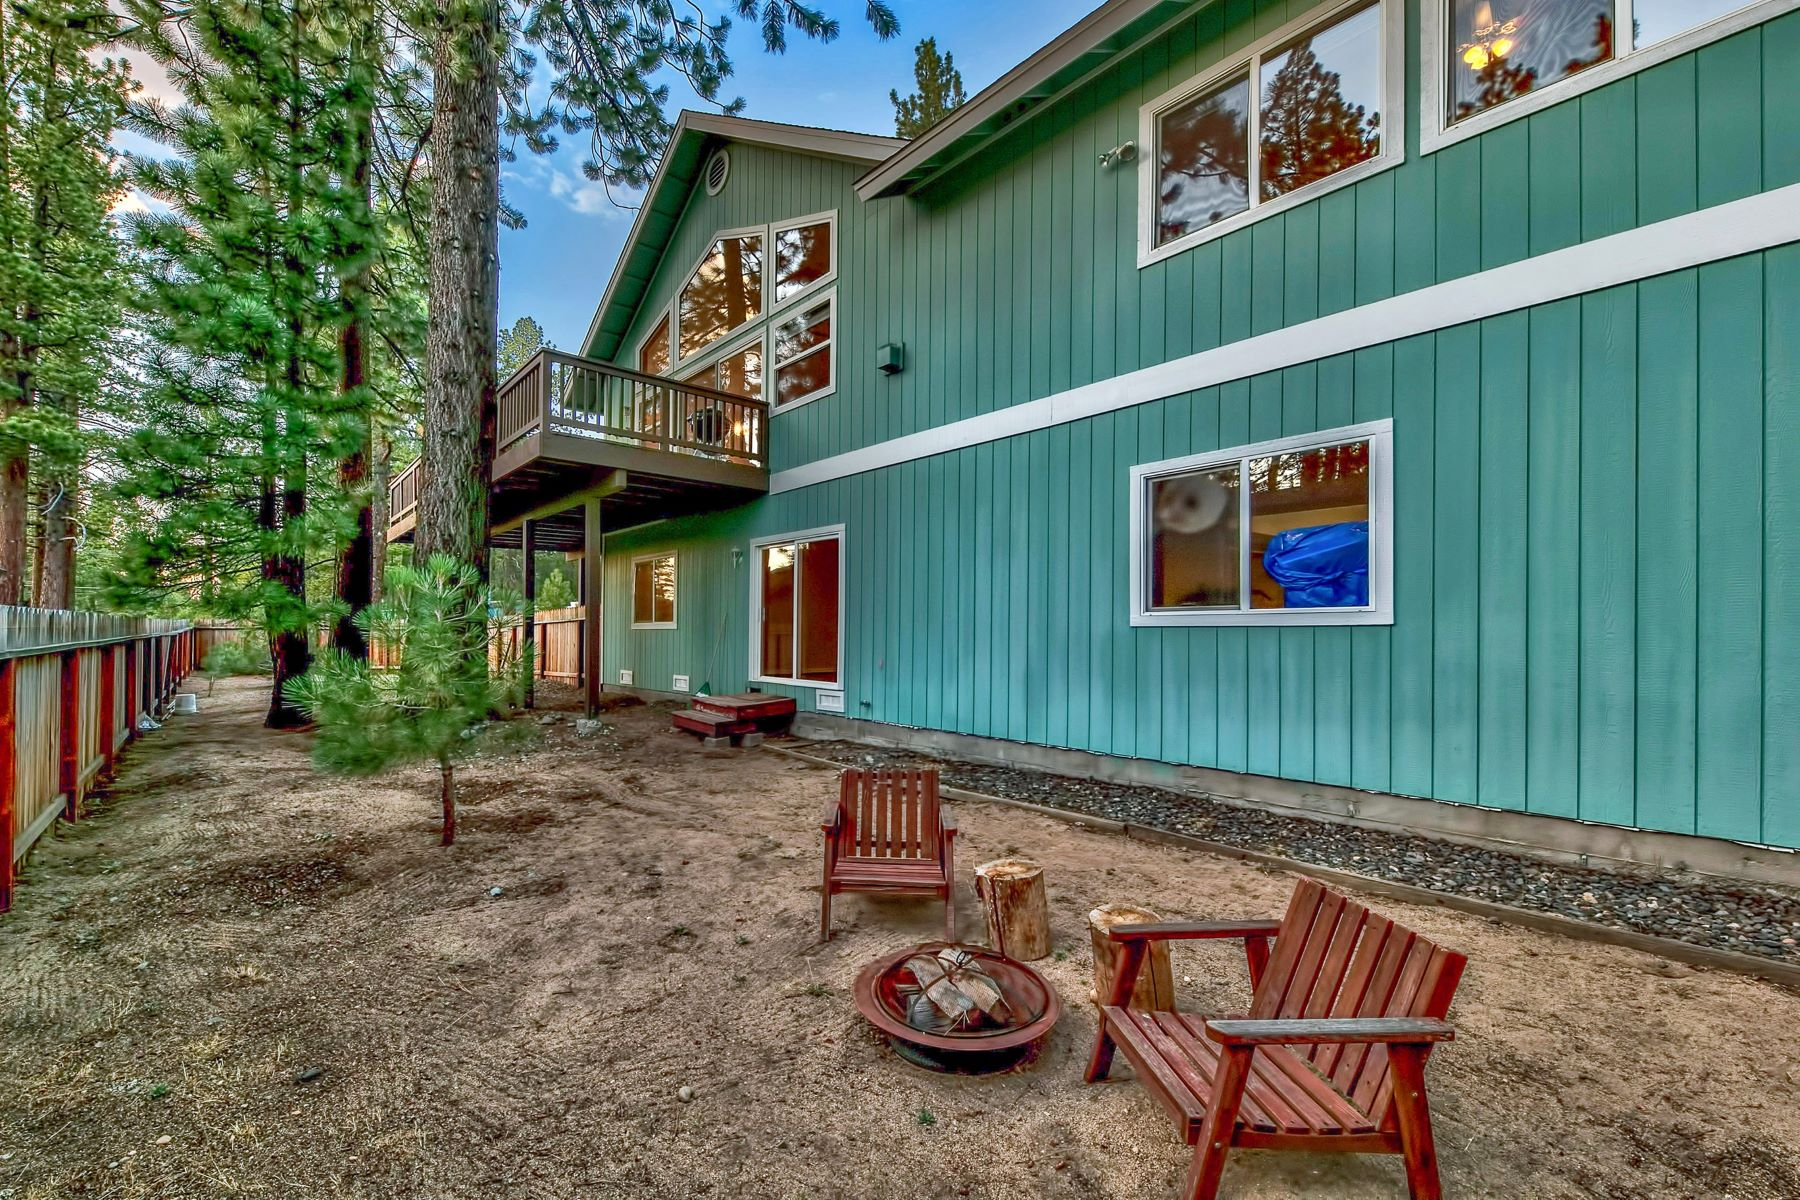 Additional photo for property listing at 1328 Dick Lake Road, South Lake Tahoe, CA 96150 1328 Dick Lake Road South Lake Tahoe, California 96150 United States